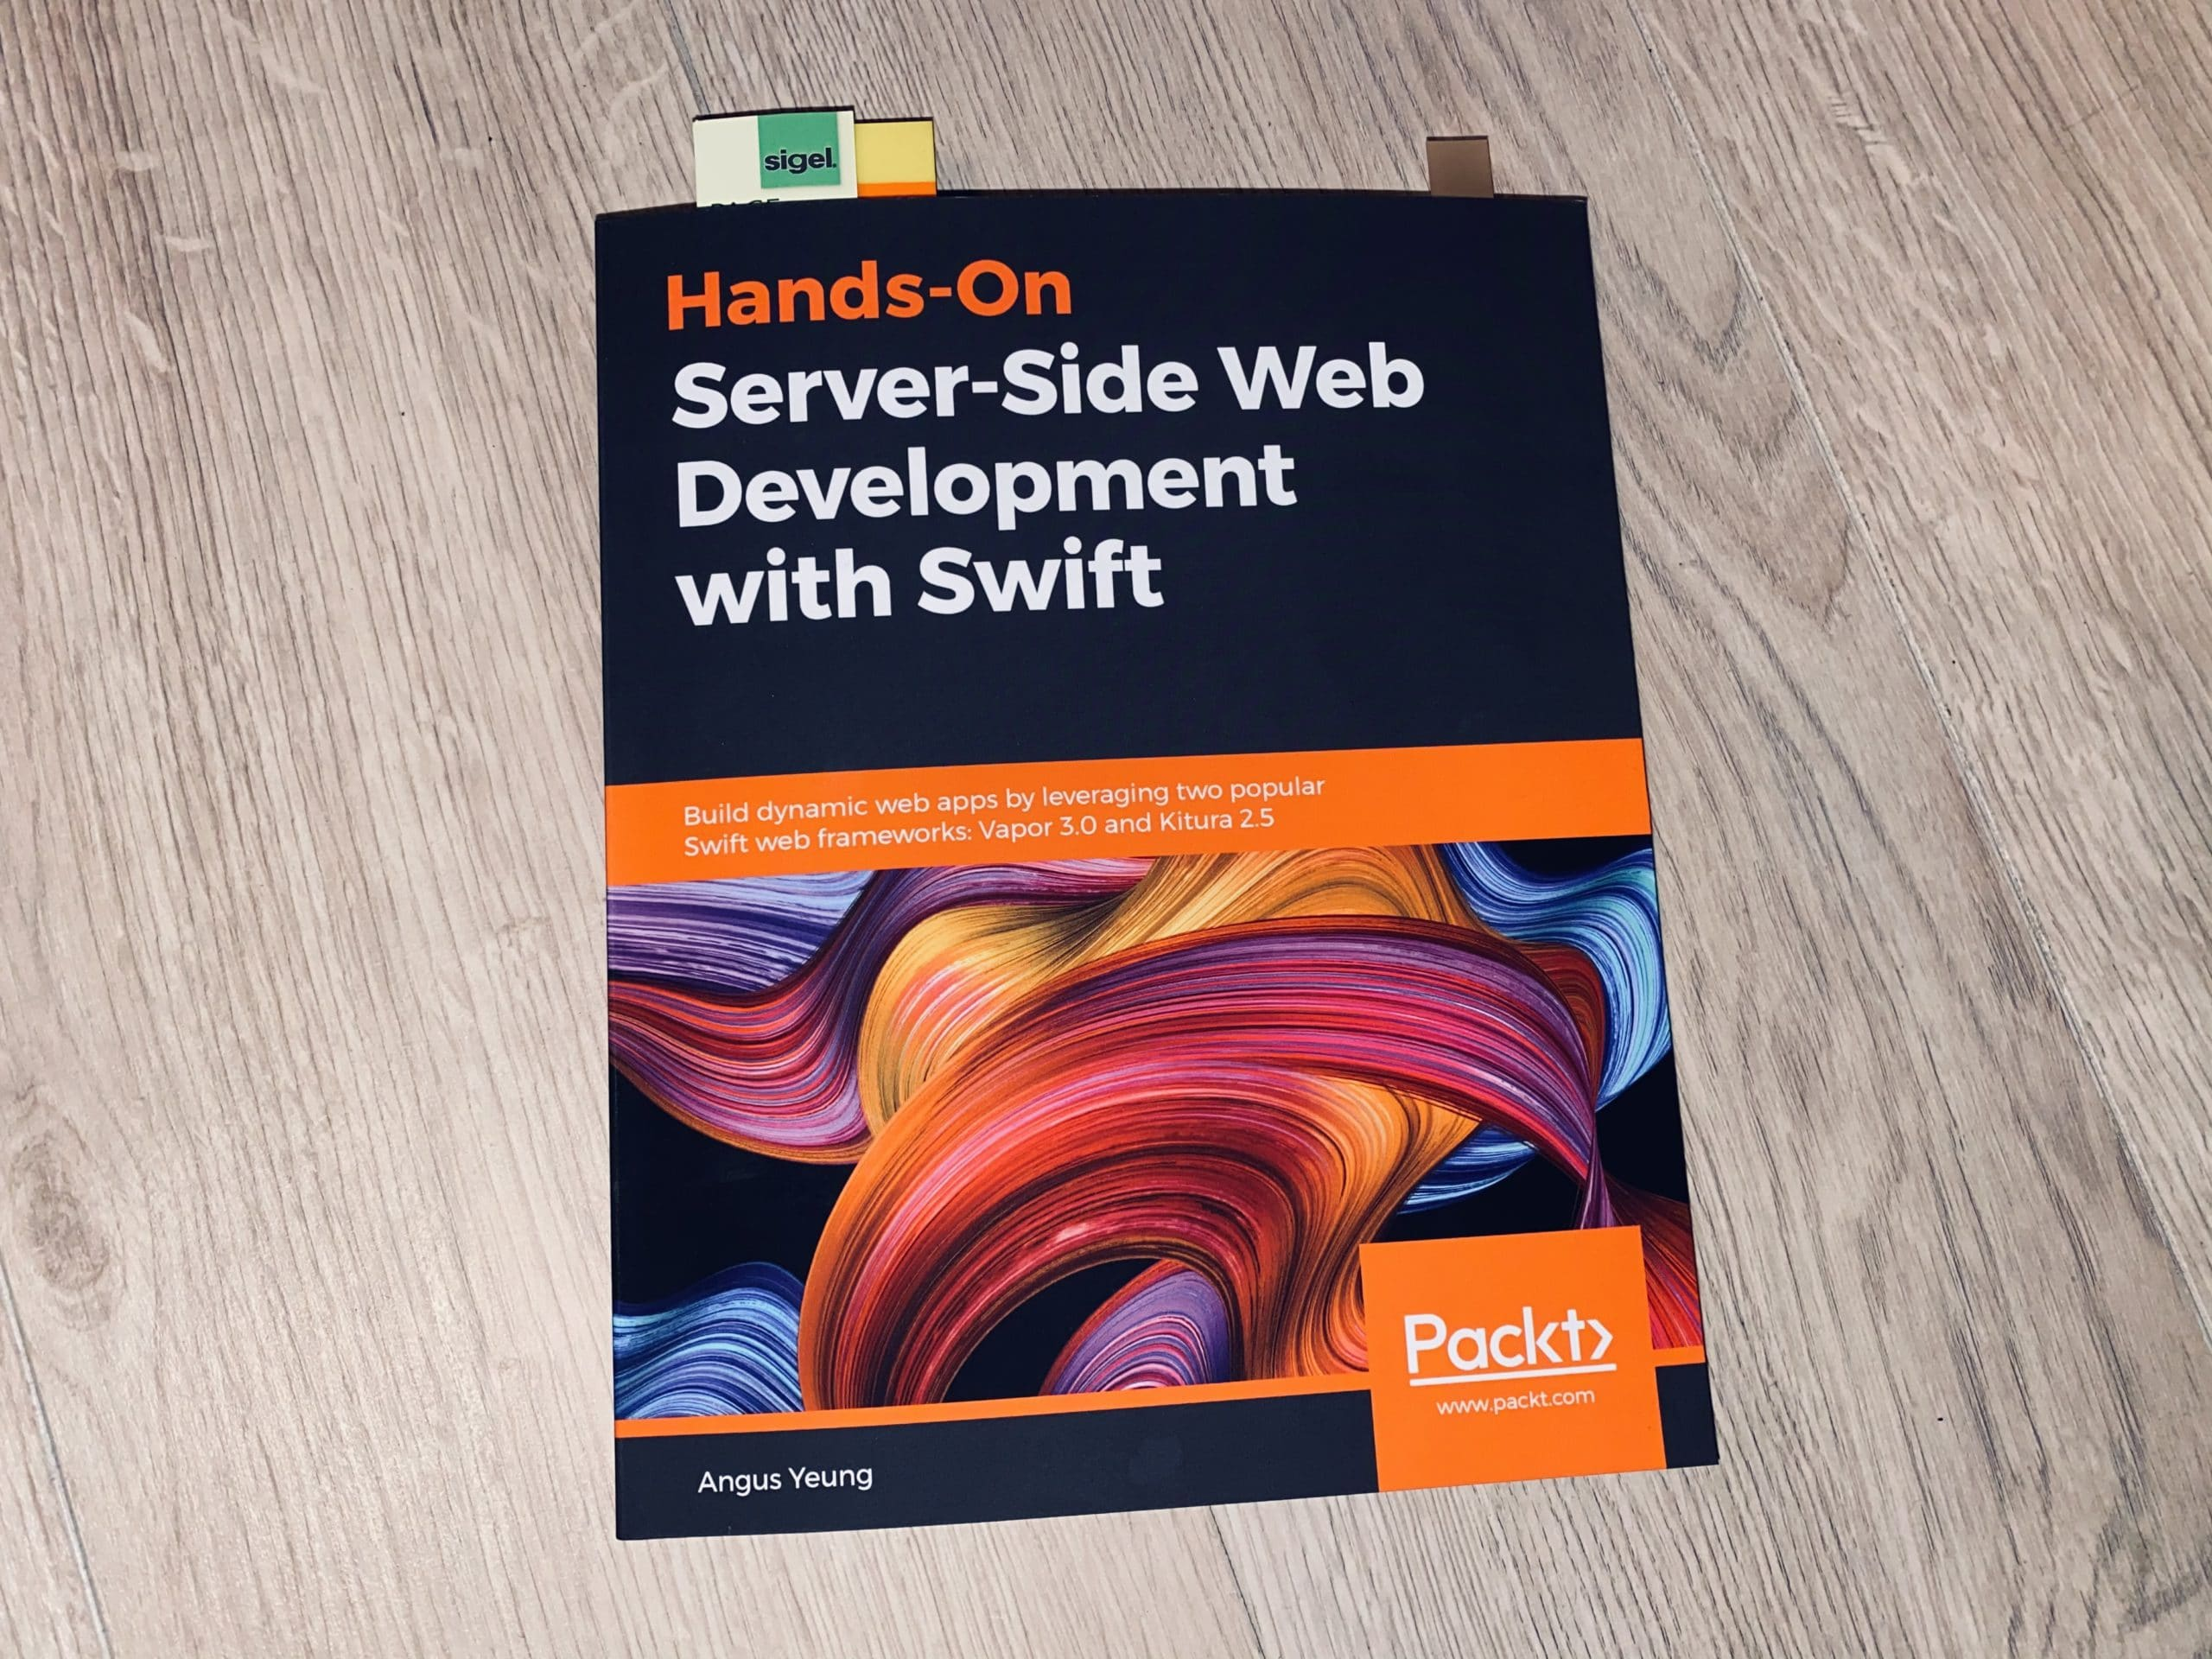 Hands-On - Server-Side Web Development with Swift